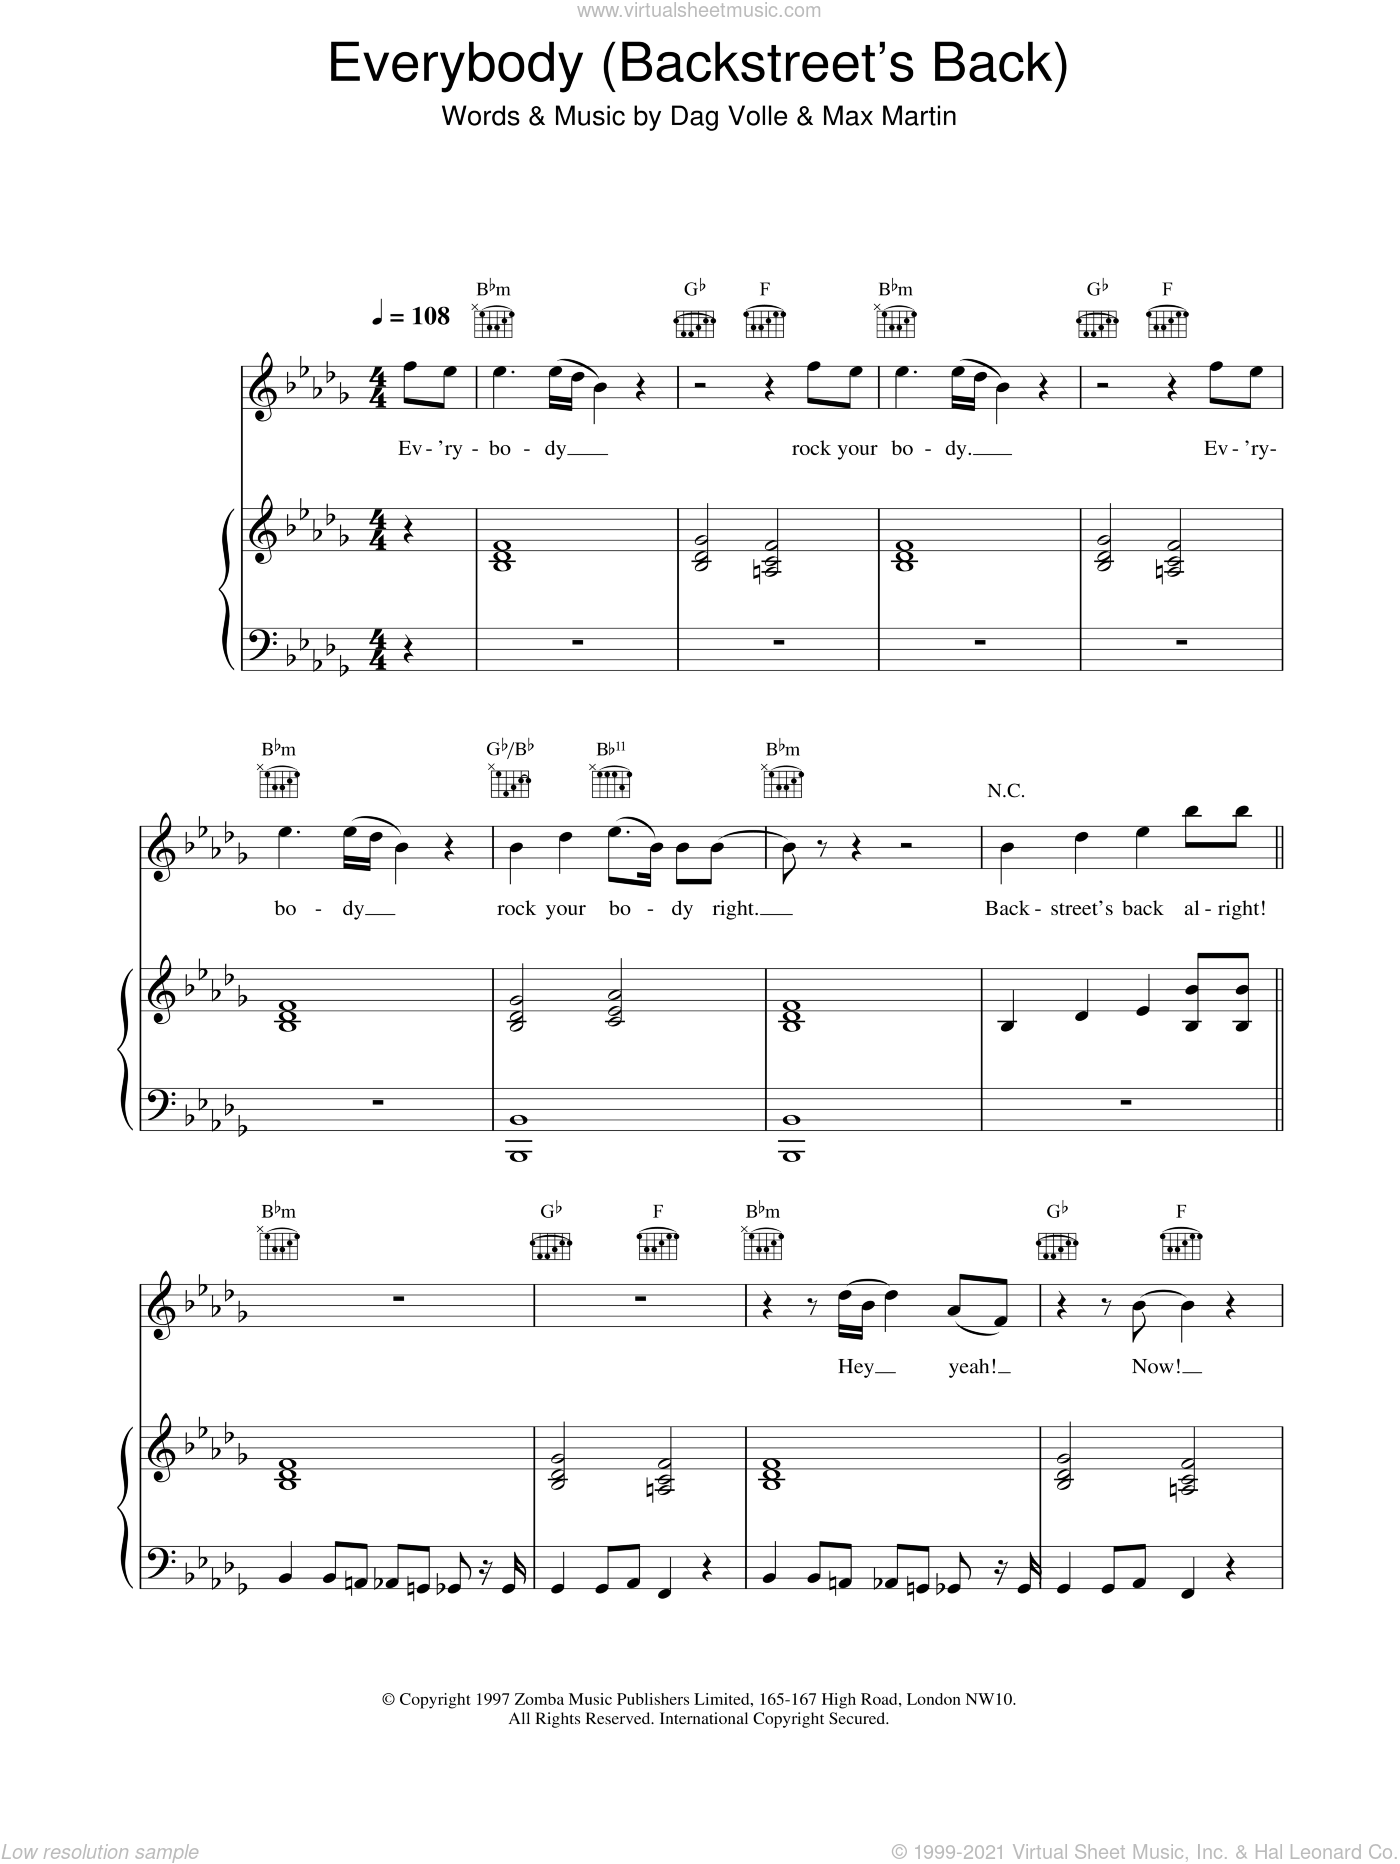 Everybody (Backstreet's Back) sheet music for voice, piano or guitar by Dag Volle